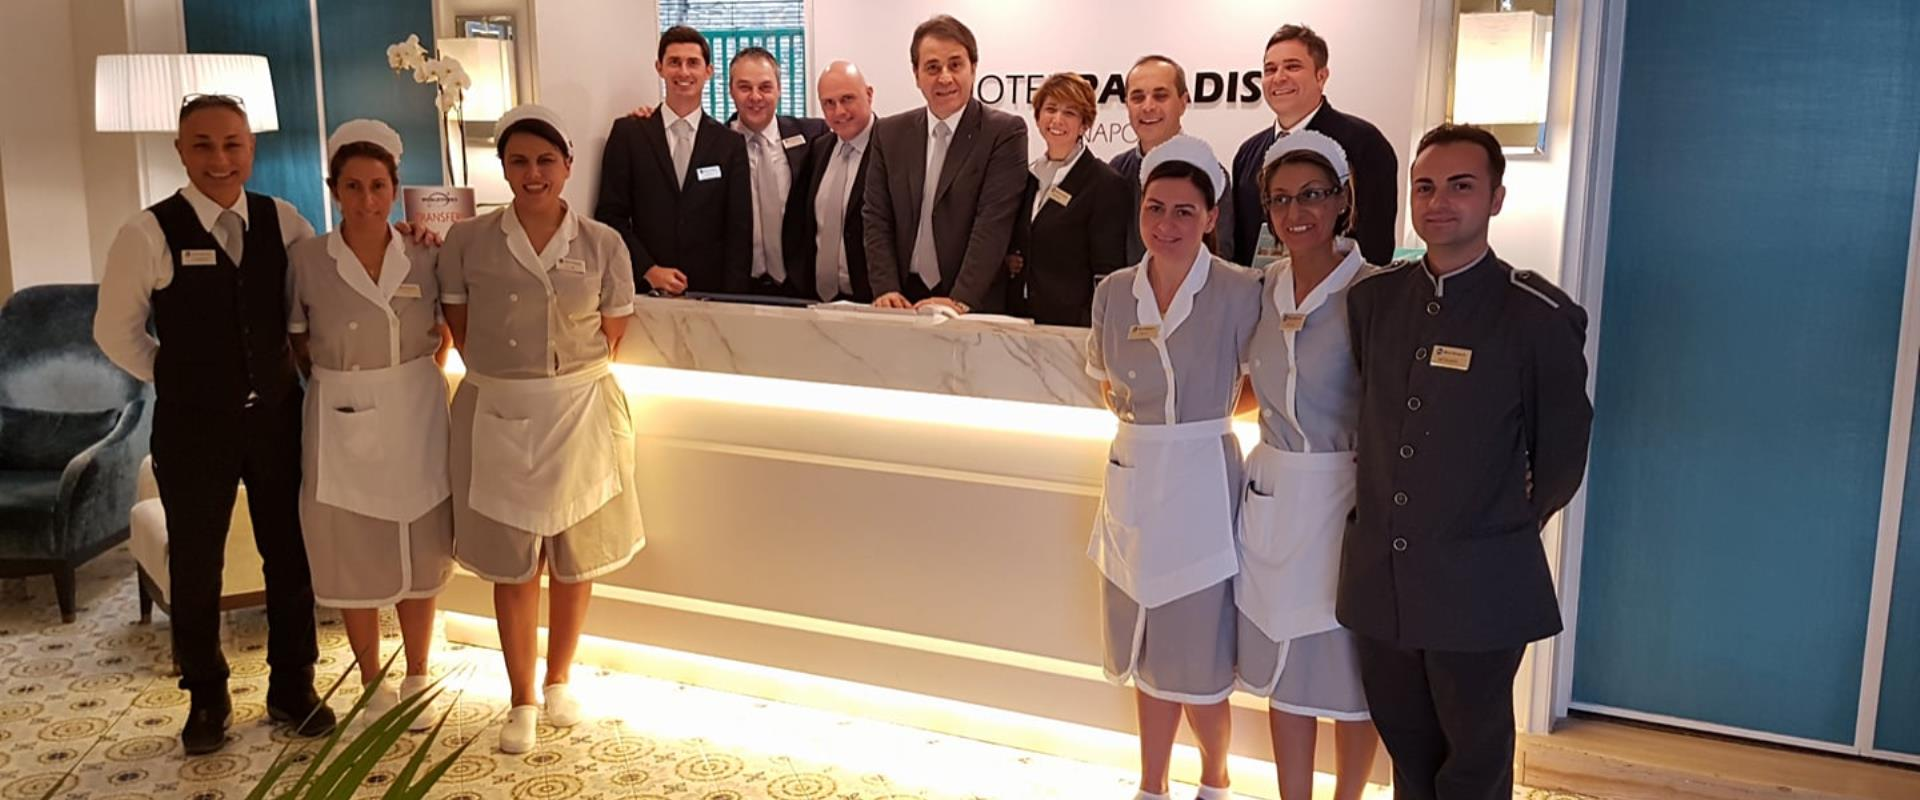 TheBW Signature Collection Hotel Paradiso present its staff for the year 2018, a freshly renovated the hotel reception.